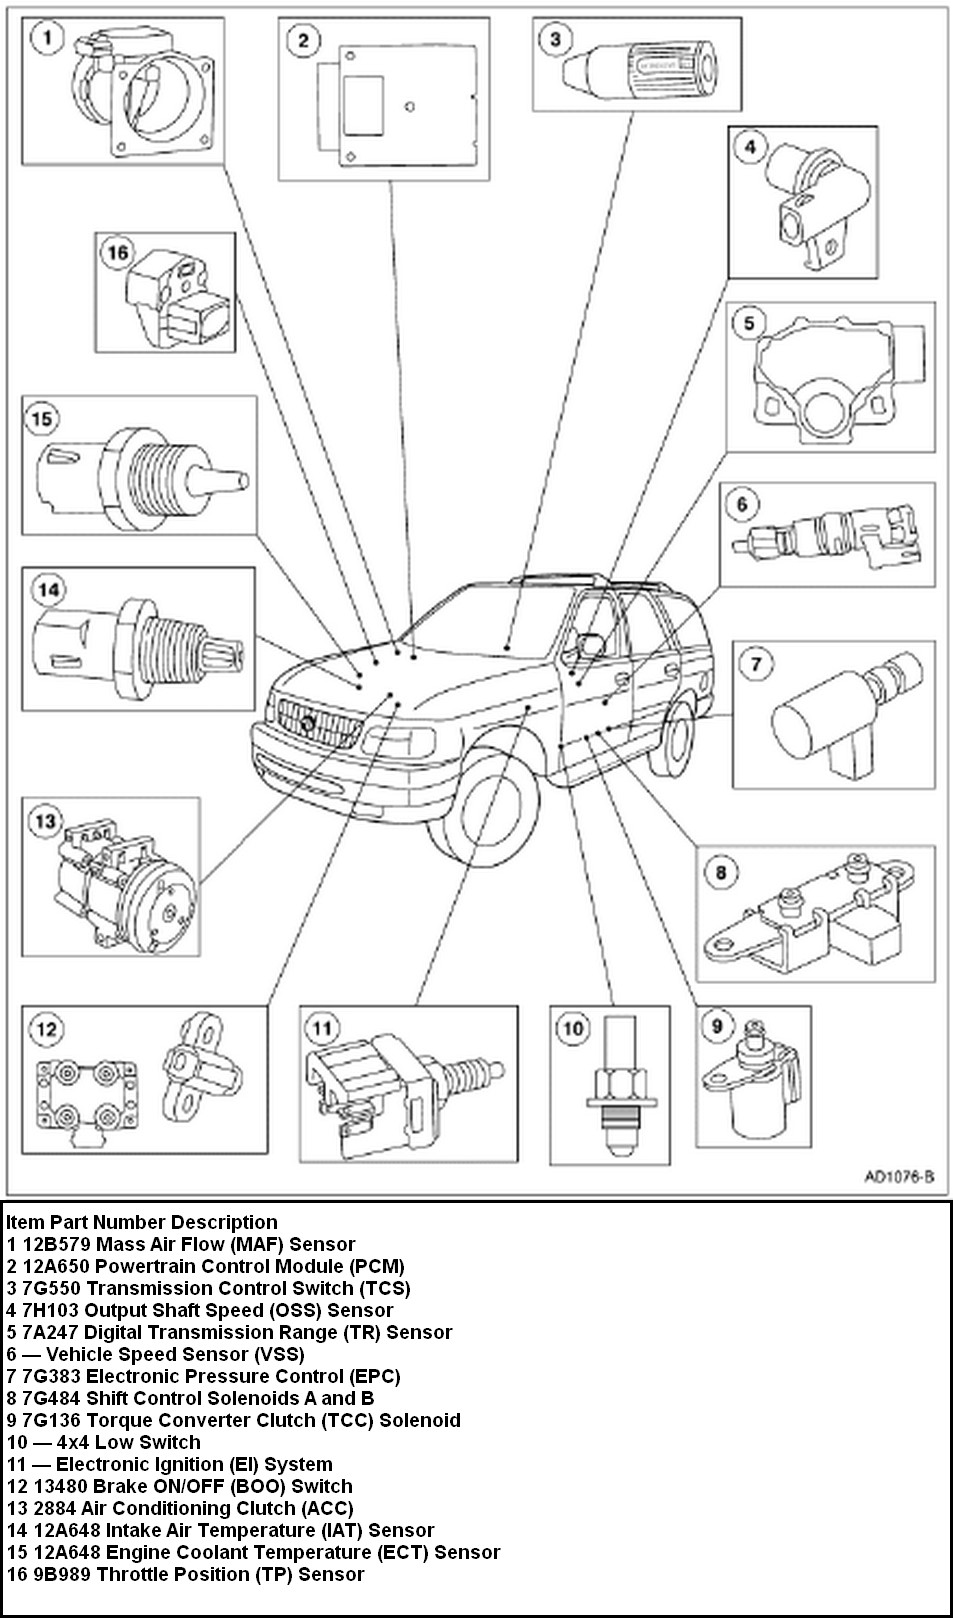 1999 ford explorer with a code po500 and speedomerter not working rh justanswer com 1999 ford explorer manual pdf 1999 ford explorer repair manual pdf